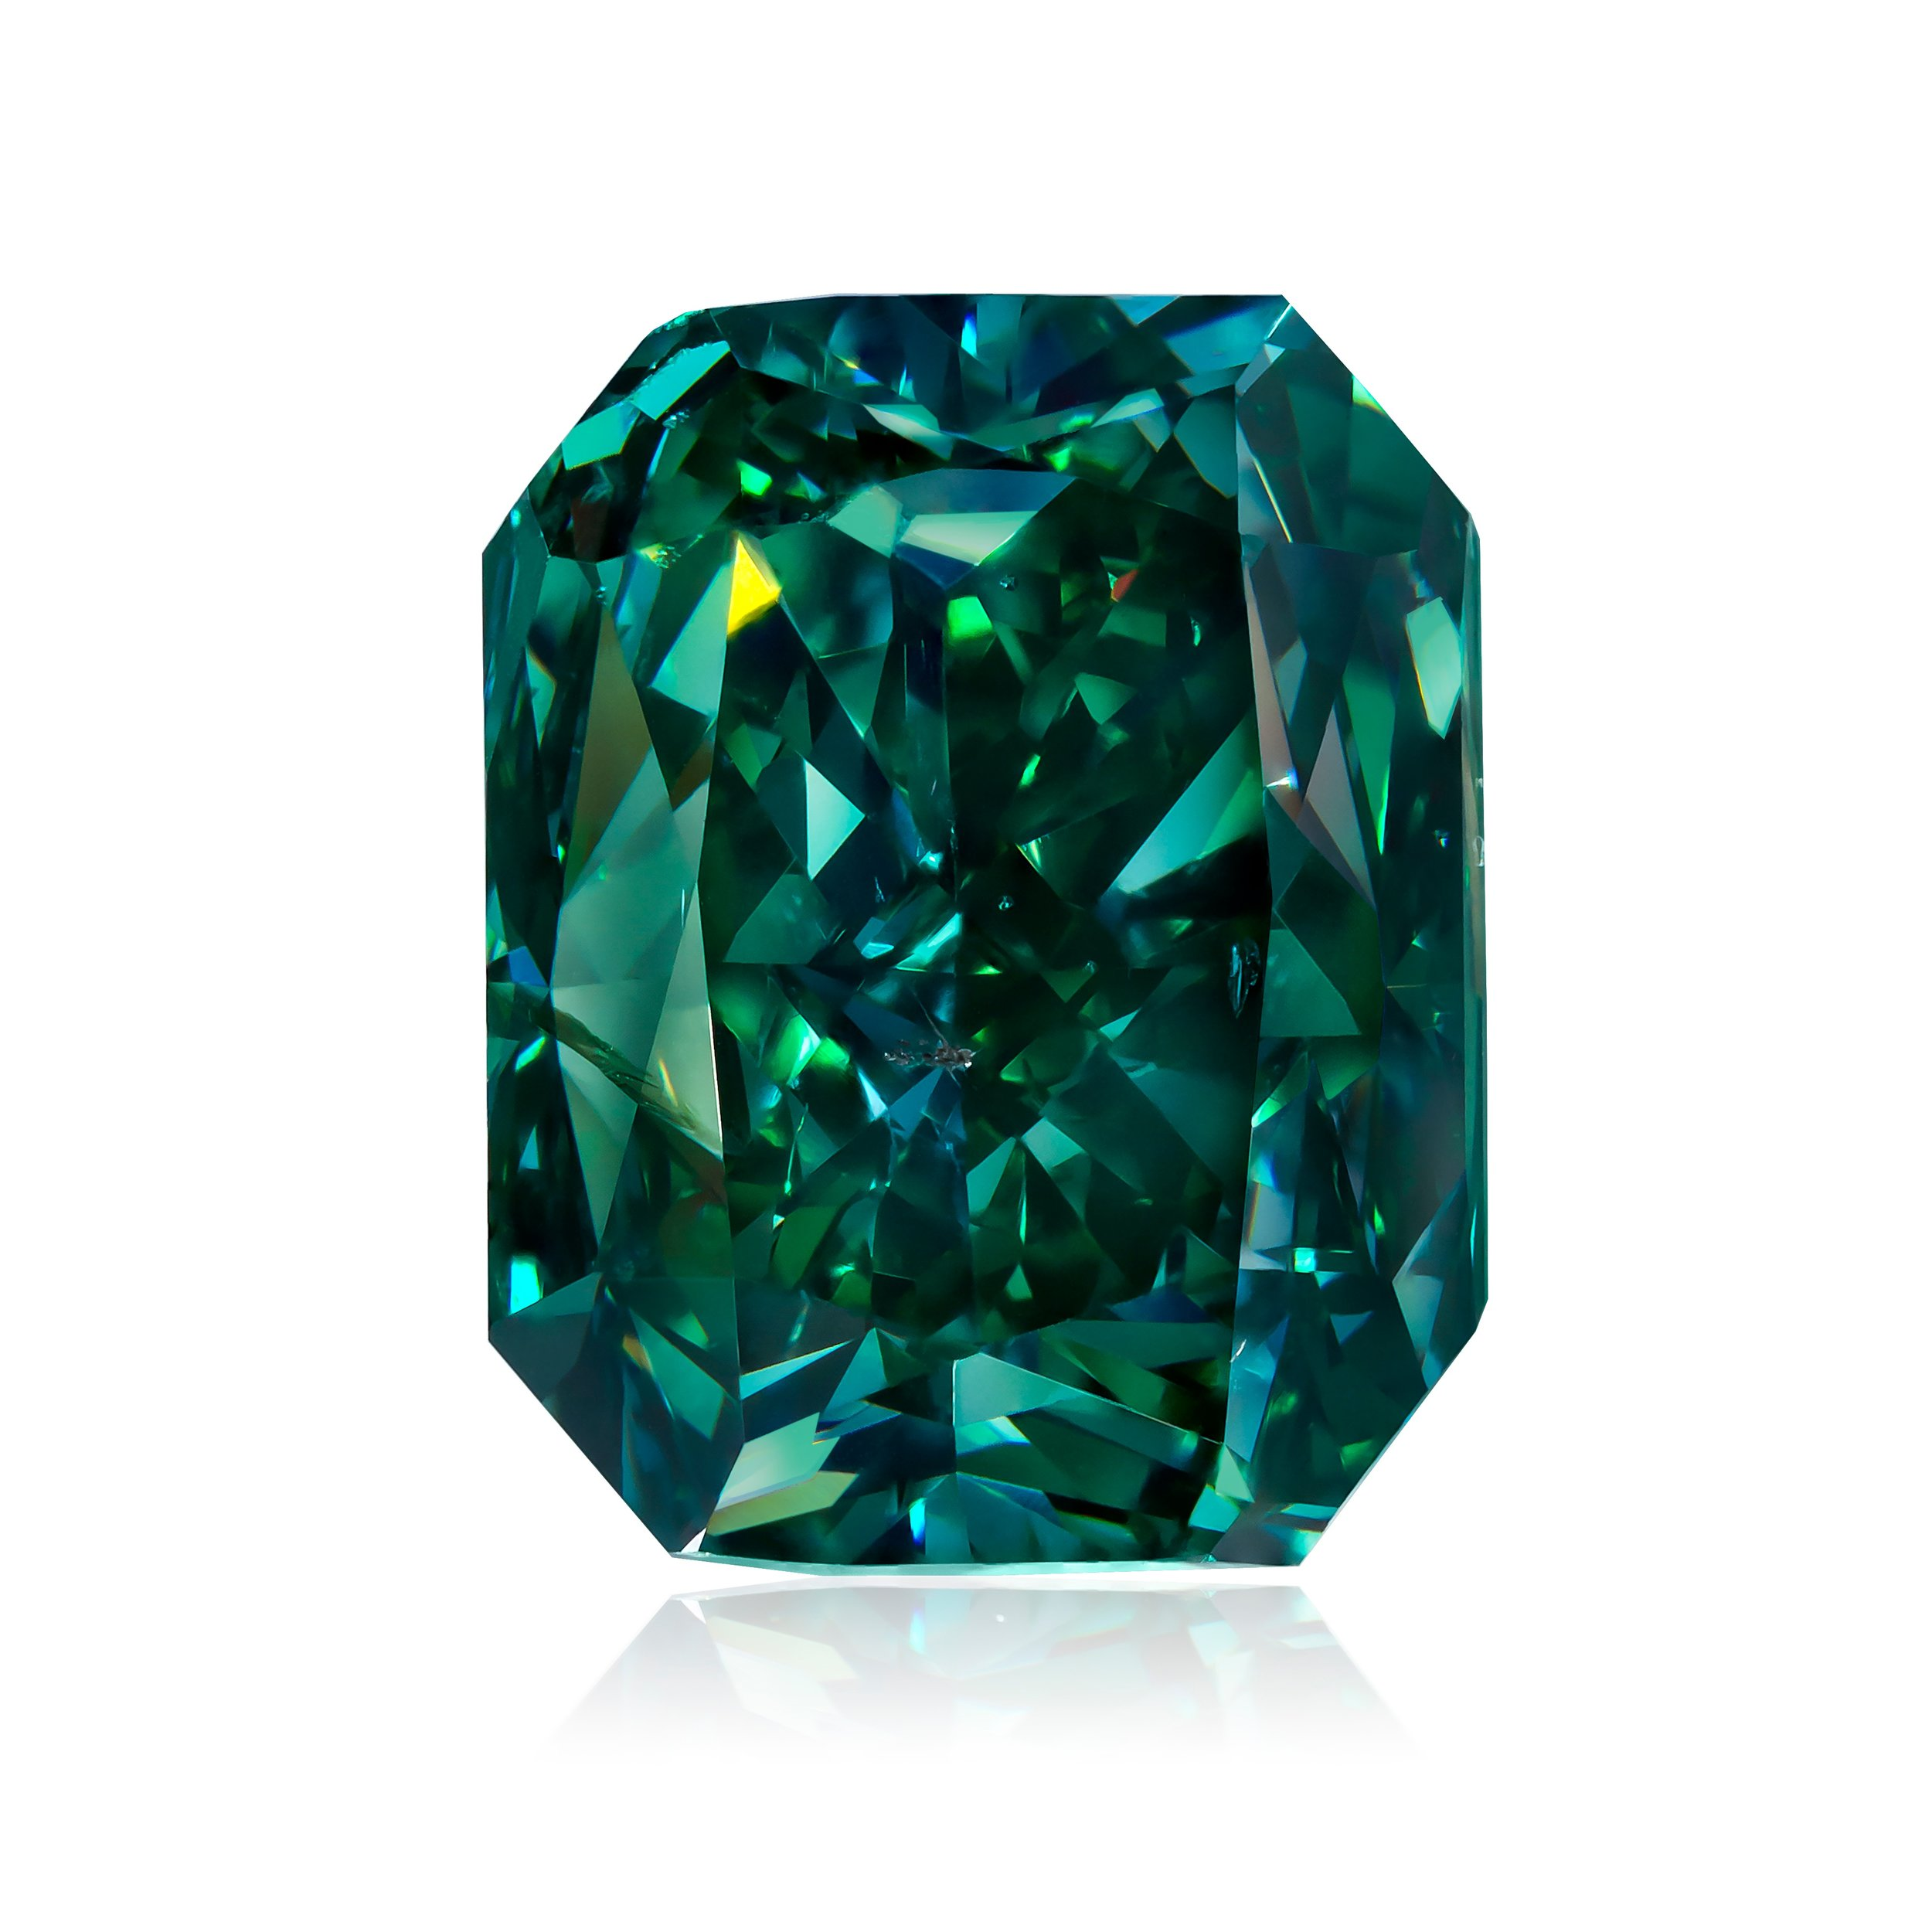 The Optimum Gamma Green Collection is a collection of the most rare and prestigious natural green diamonds in the world, with more than 50 stones in this collection accrued over 20 years.